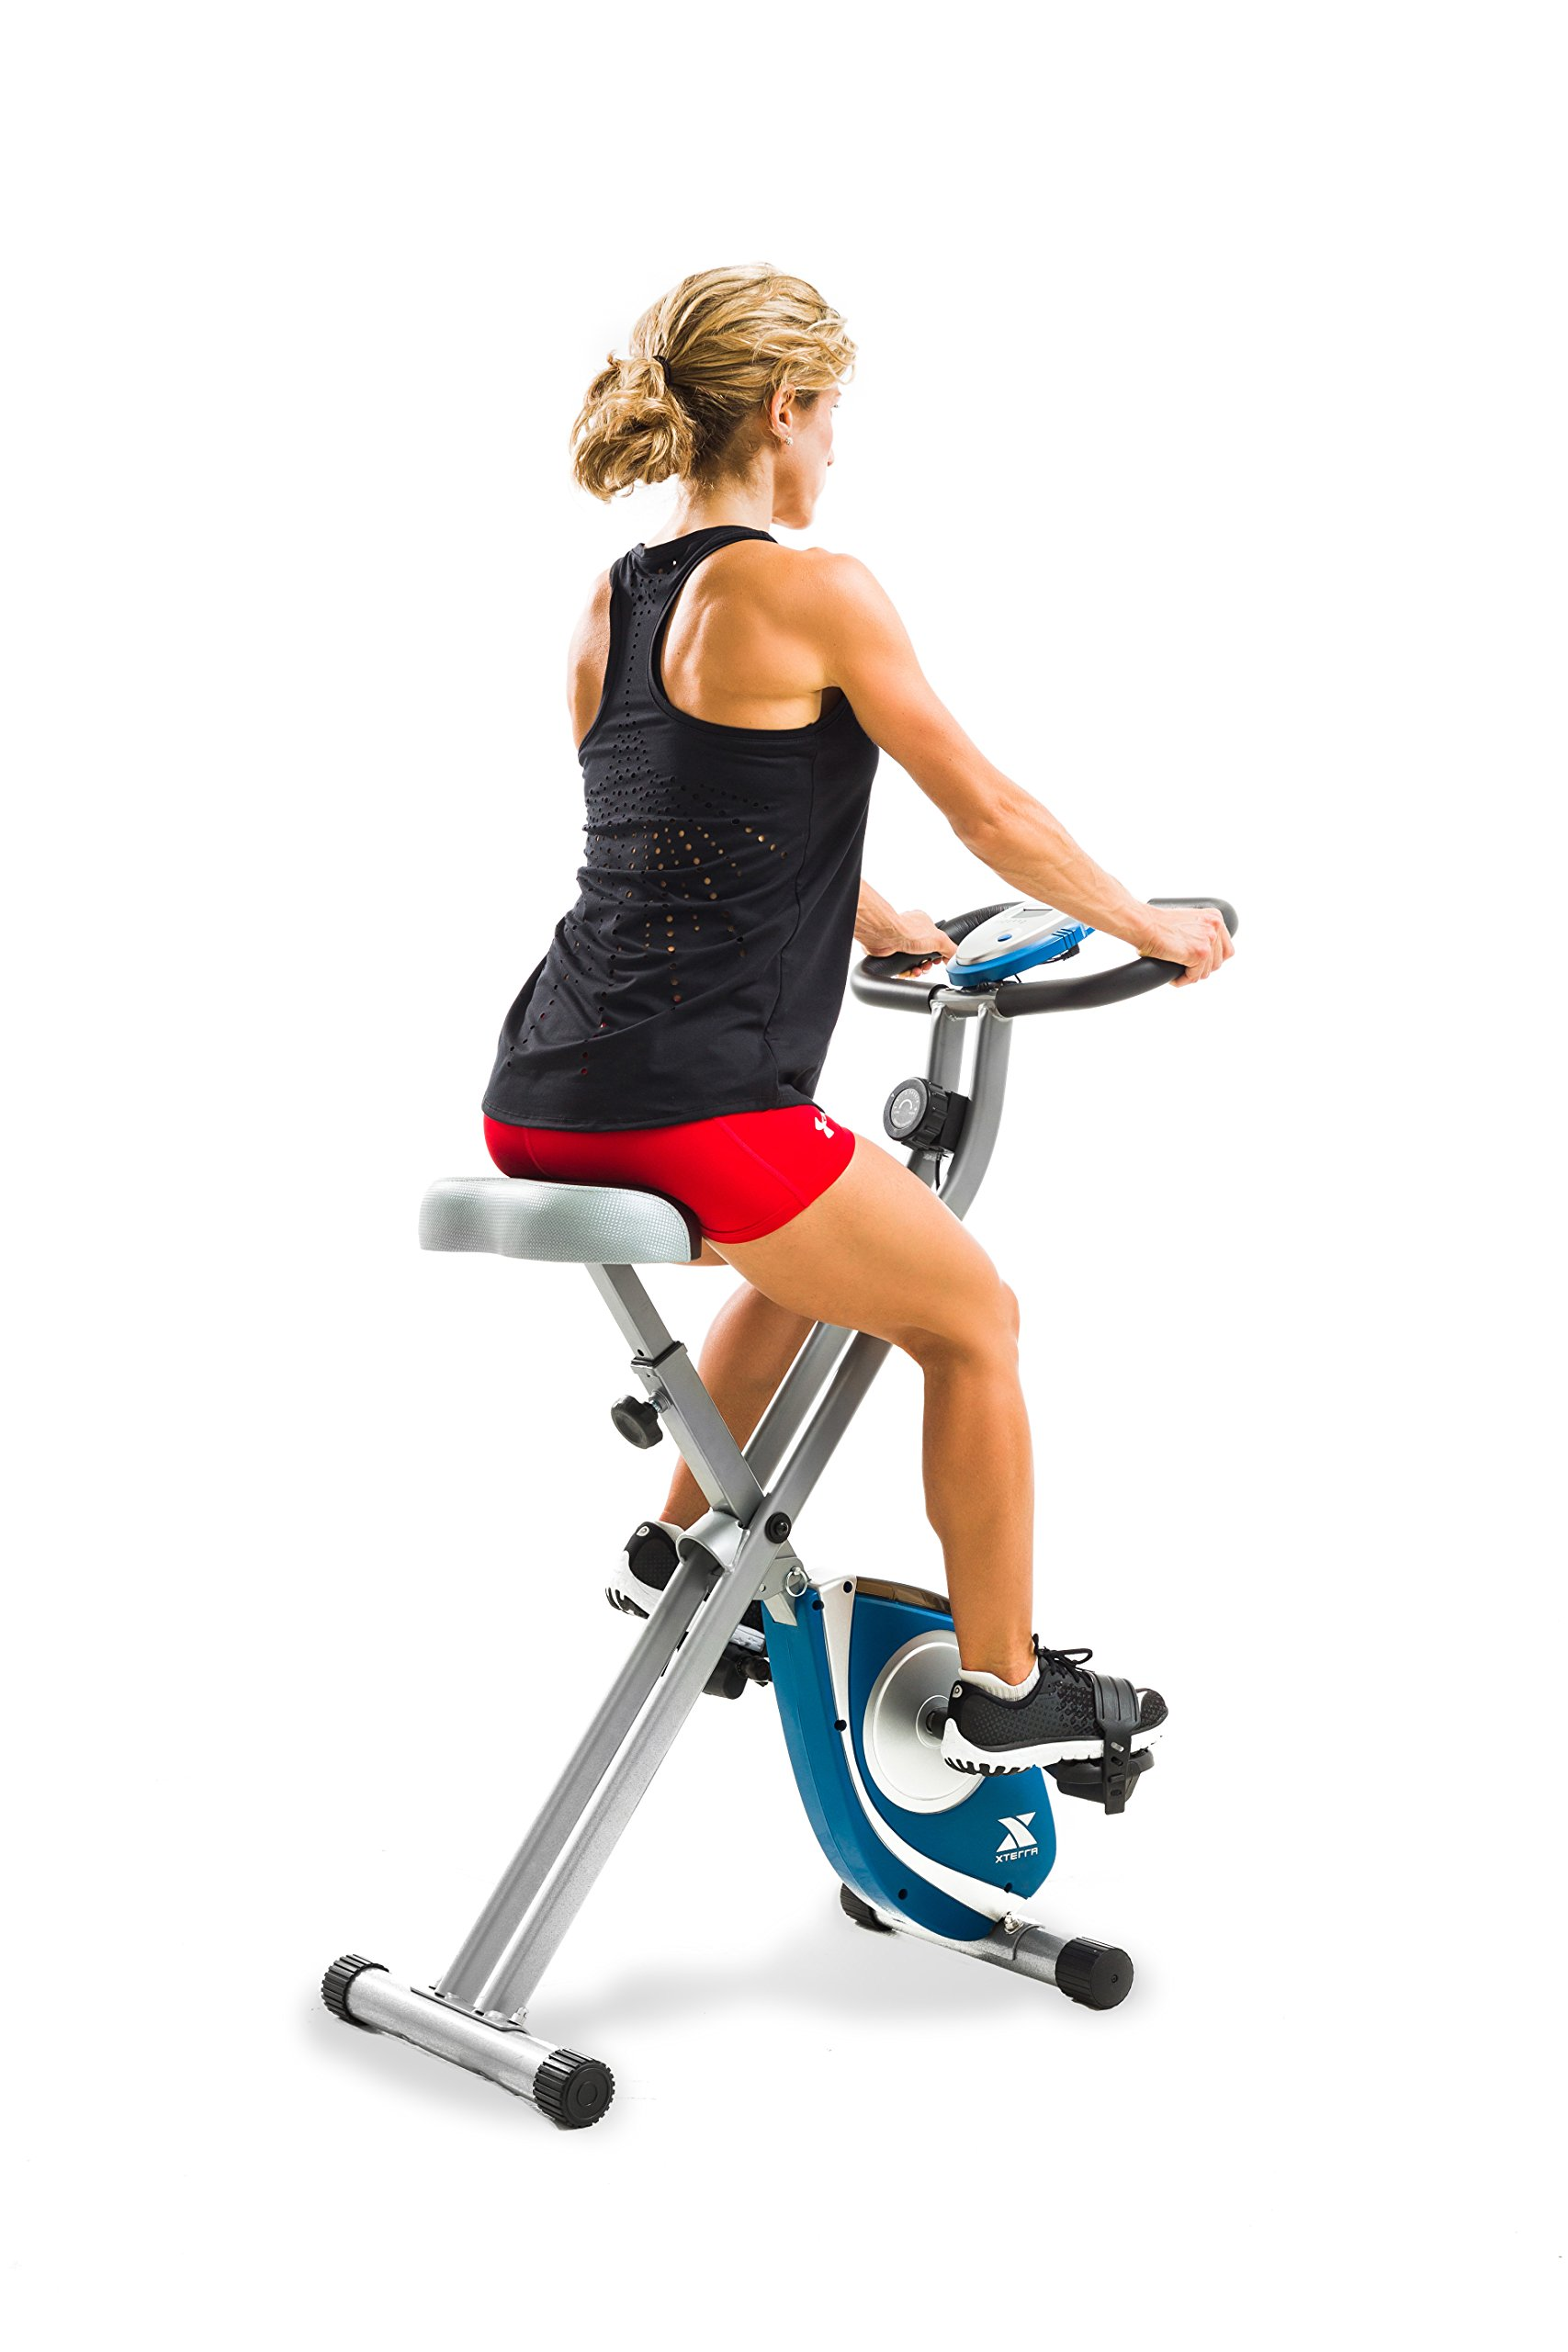 XTERRA Fitness FB150 Folding Exercise Bike, Silver by XTERRA Fitness (Image #8)